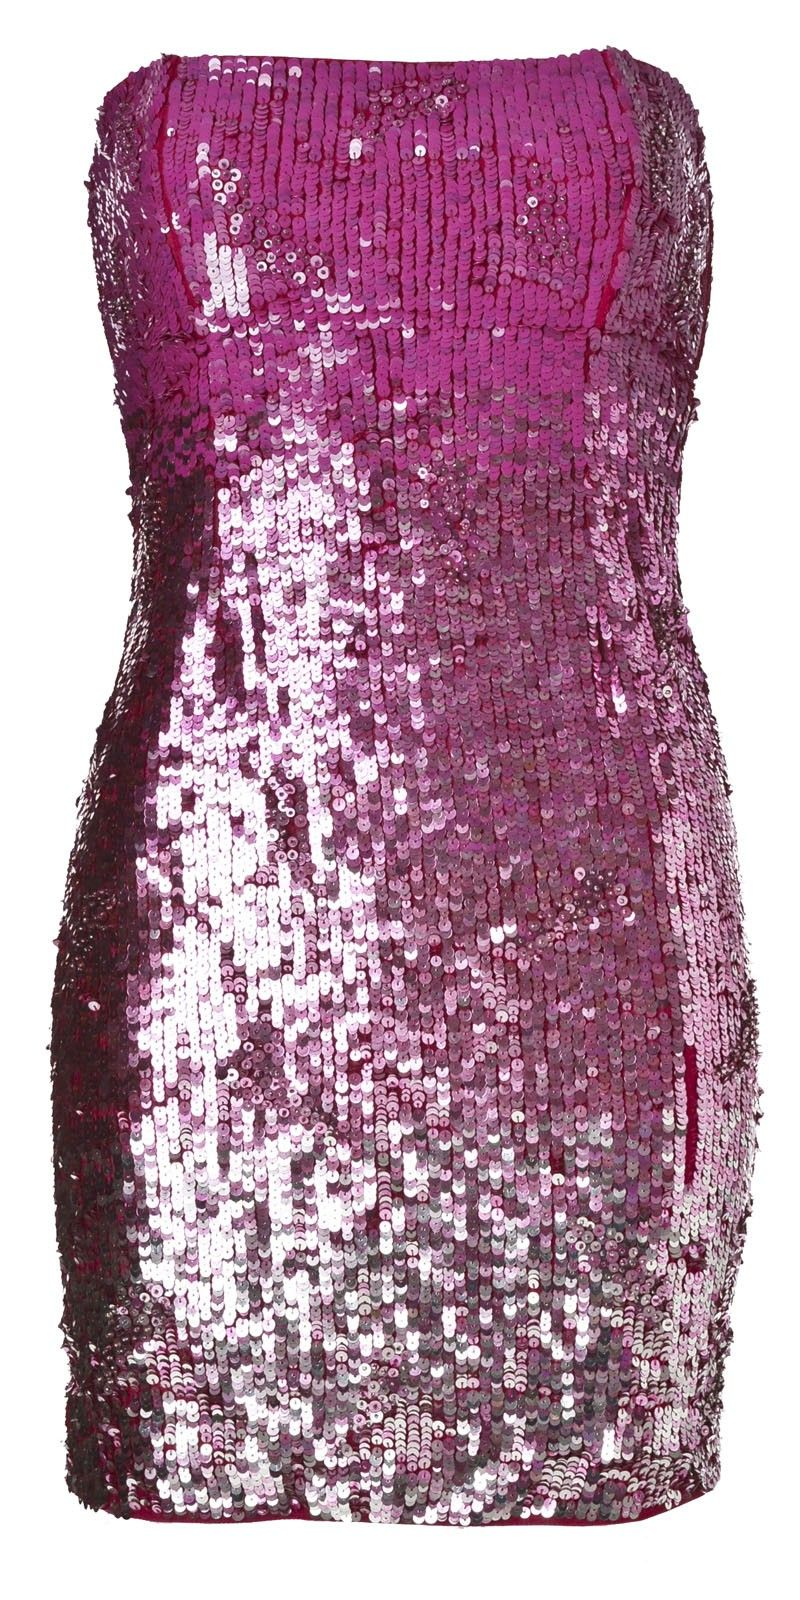 Rigby Sequin Tube Dress by Alice + Olivia | cute clothez | Pinterest